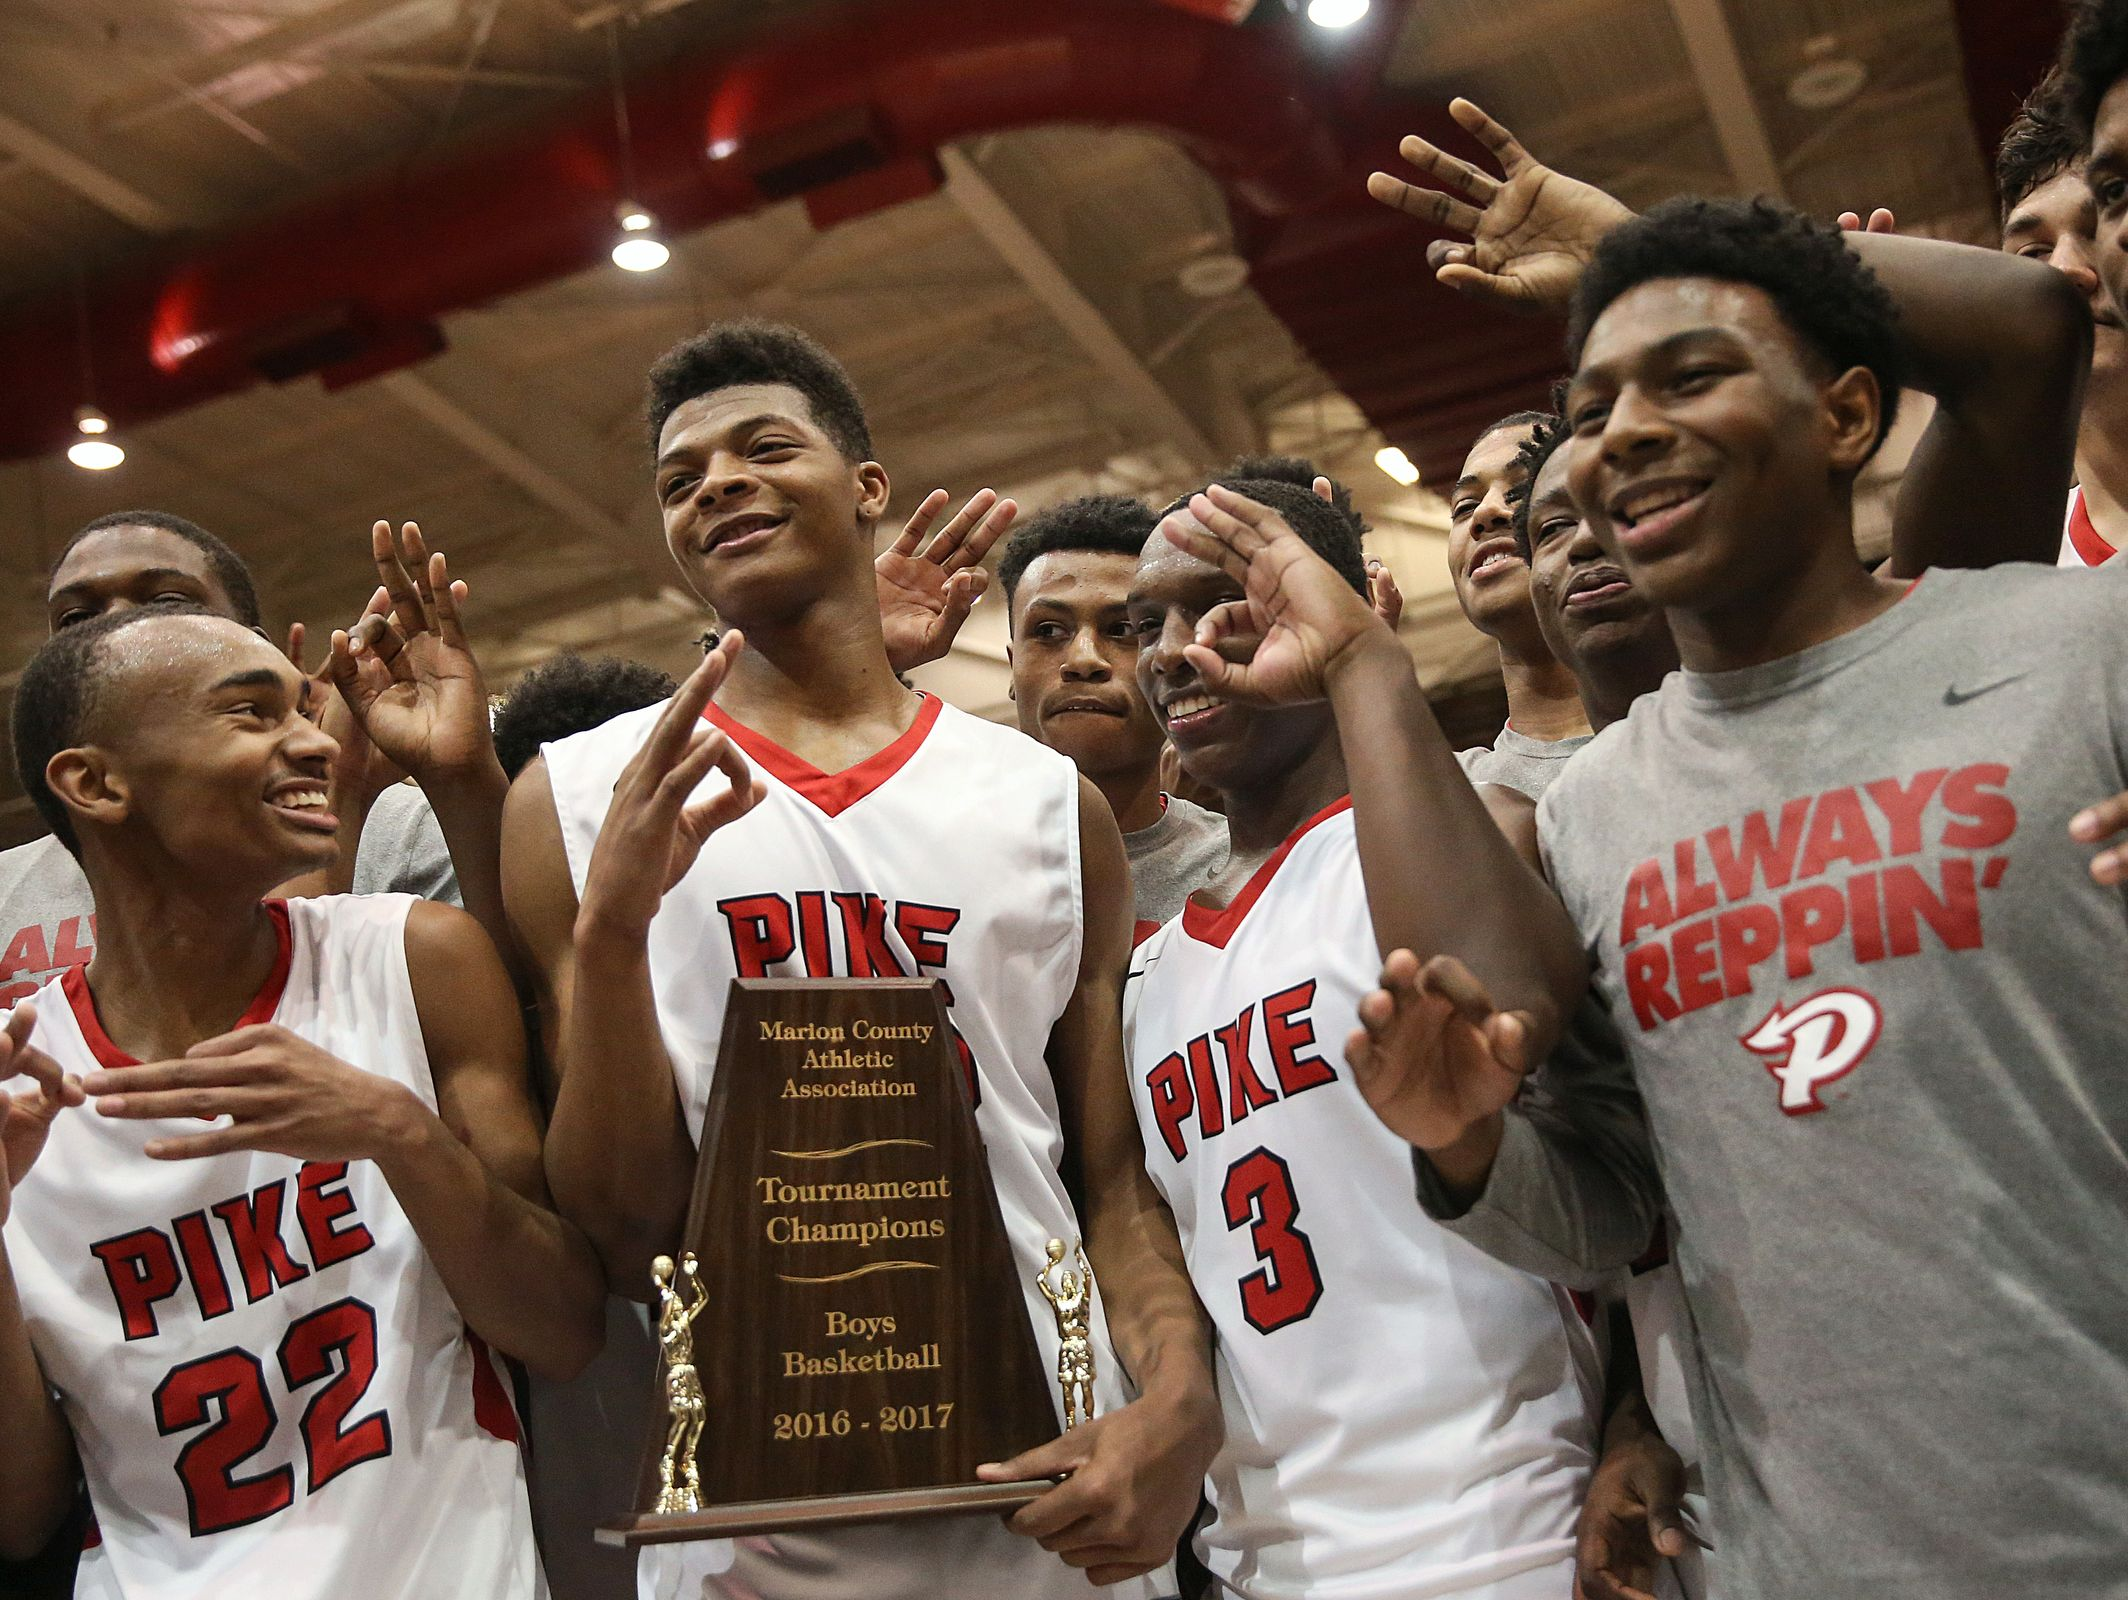 The Pike Red Devils pose with the trophy after Pike defeated North Central in Marion County boys finals, at Southport High School, Indianapolis, Saturday, Jan. 14, 2017.